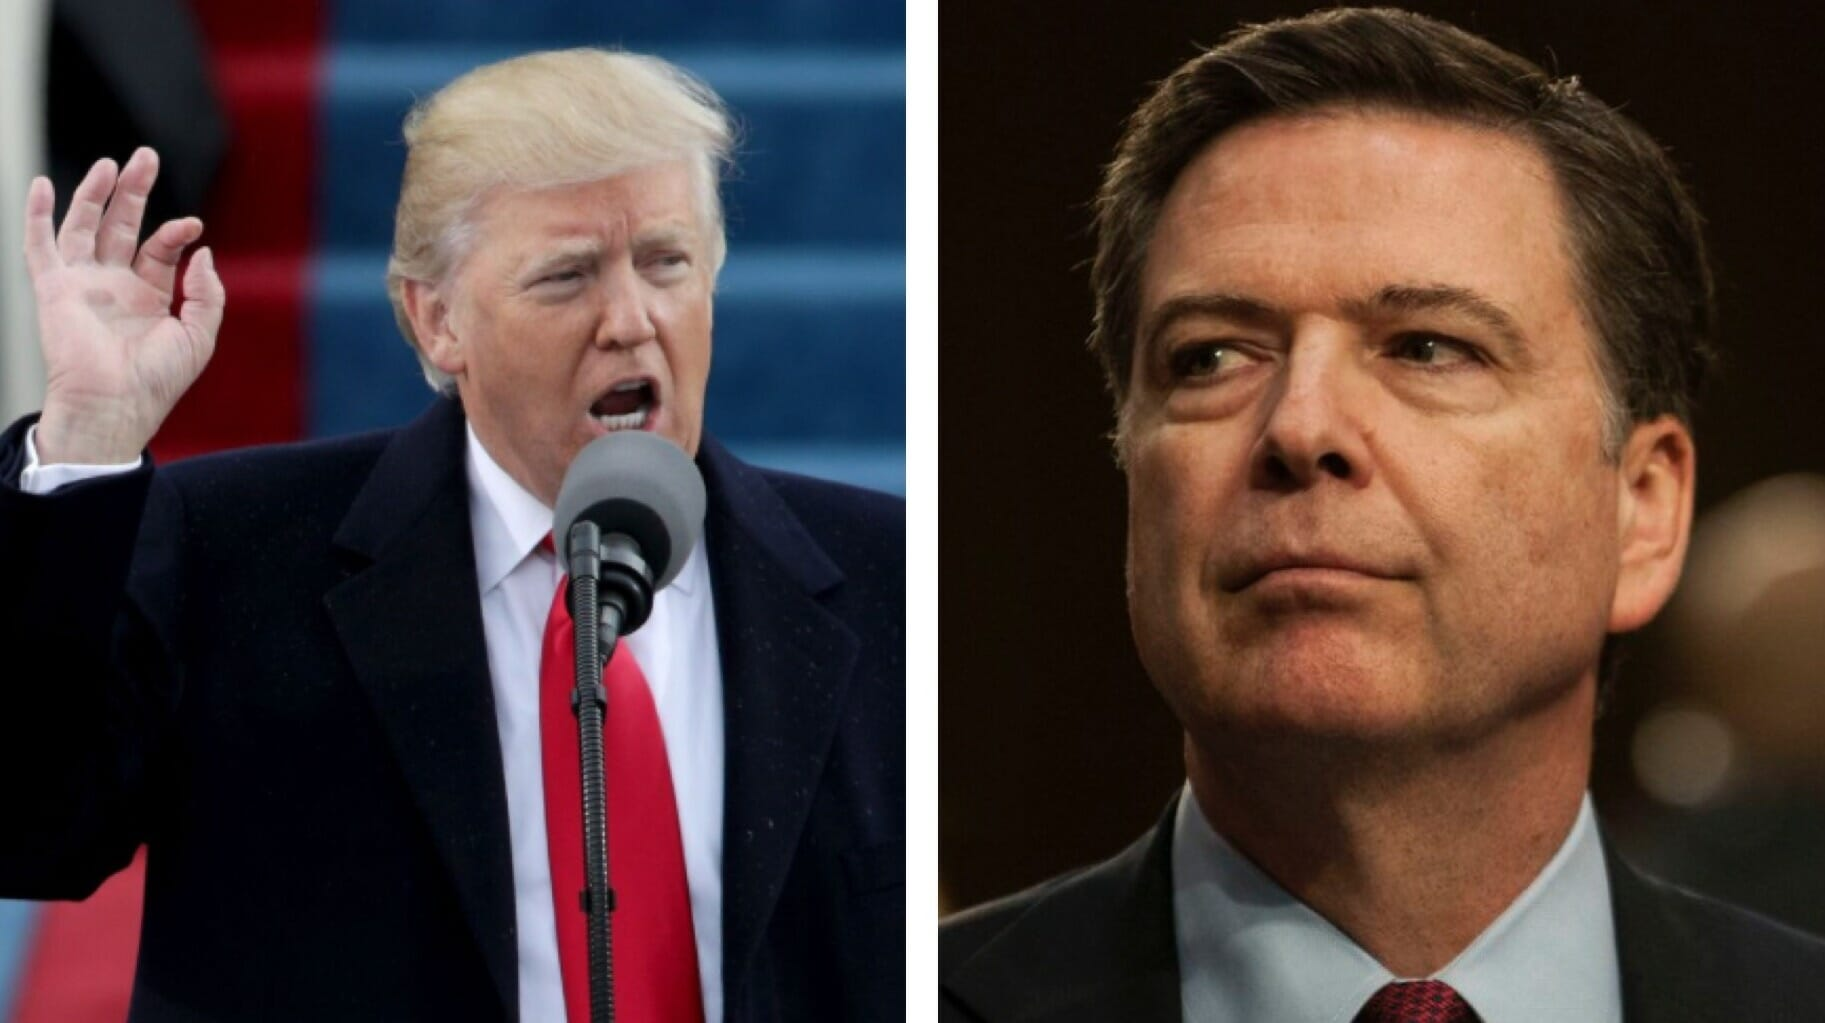 POTUS Trump RIPS Liar and Leaker James Comey Over Classified Memos AGAIN He Broke the Law